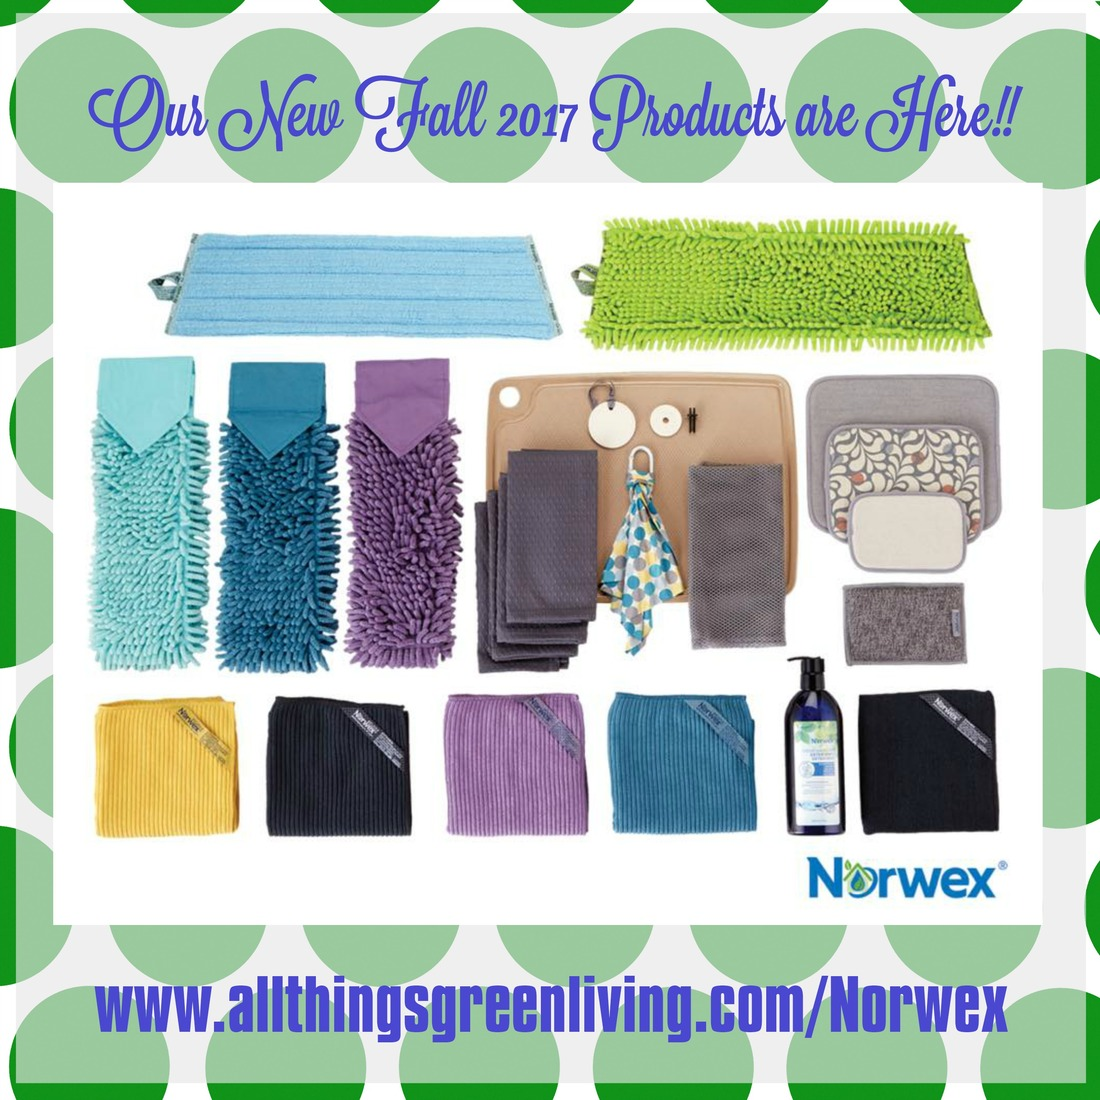 Norwex Catalog: Norwex New Fall 2017 Catalog And Products